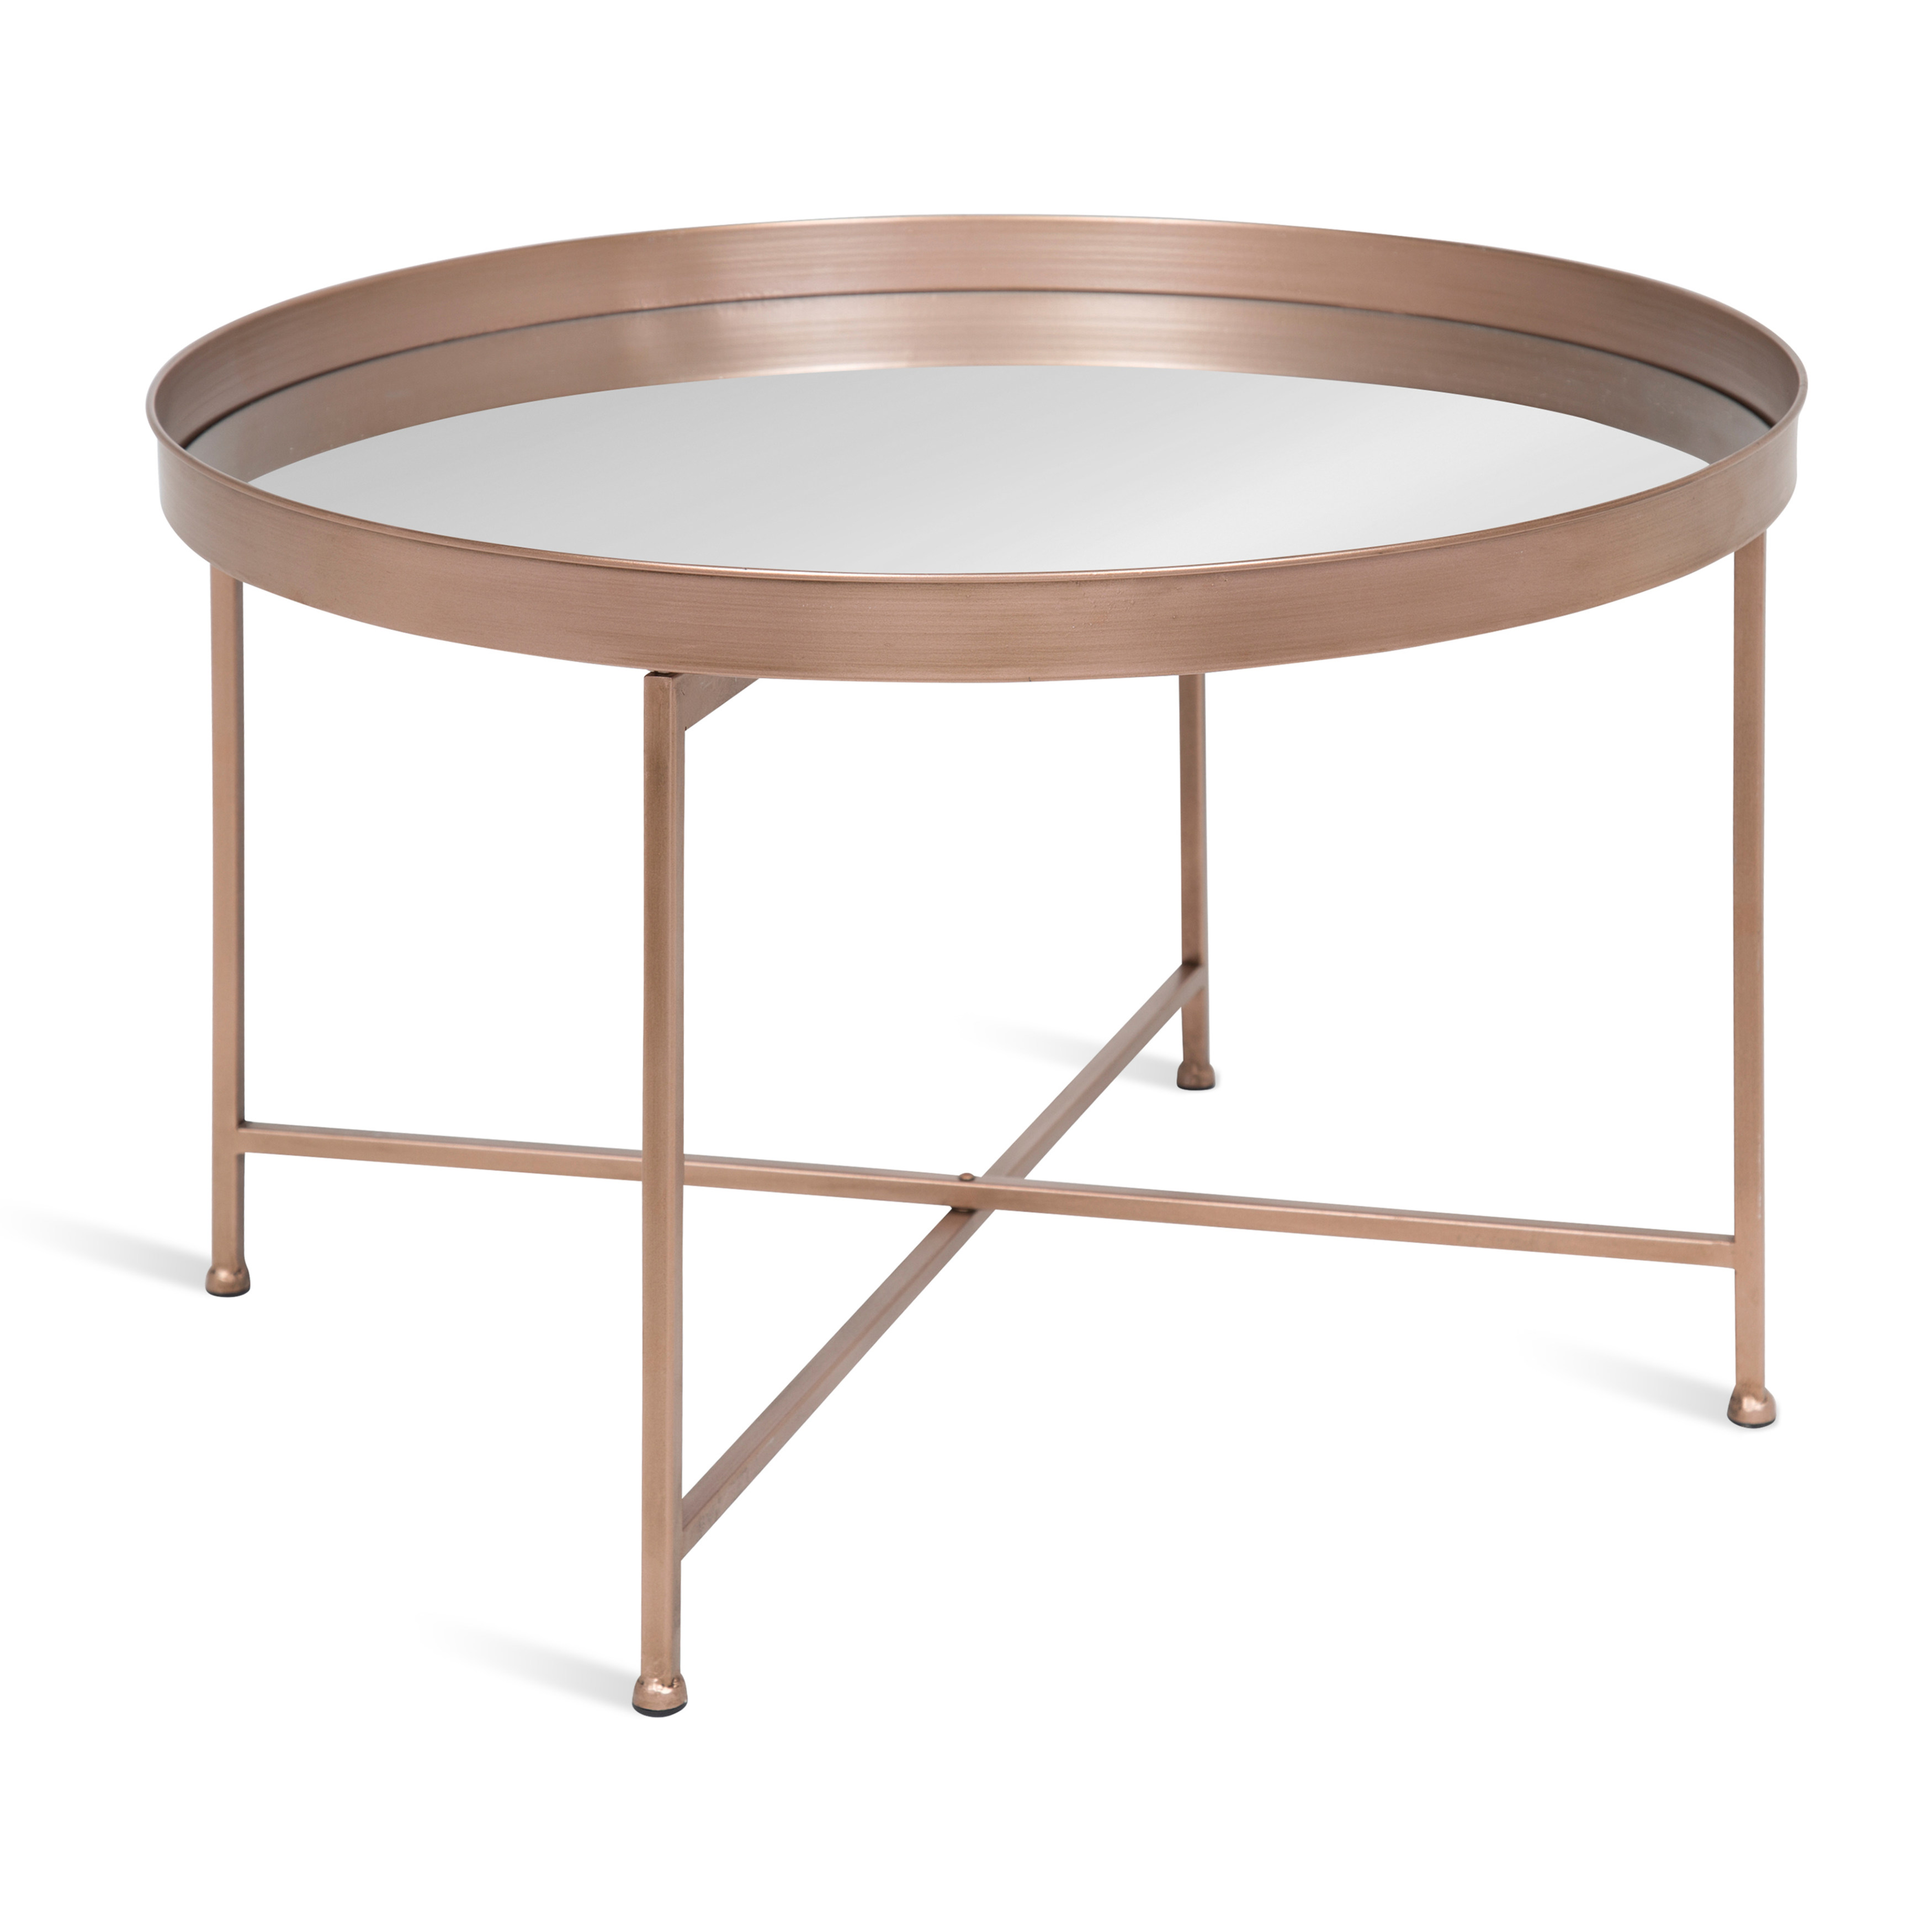 Round Plastic Tables Round Metal Folding Table Furniture Room Design